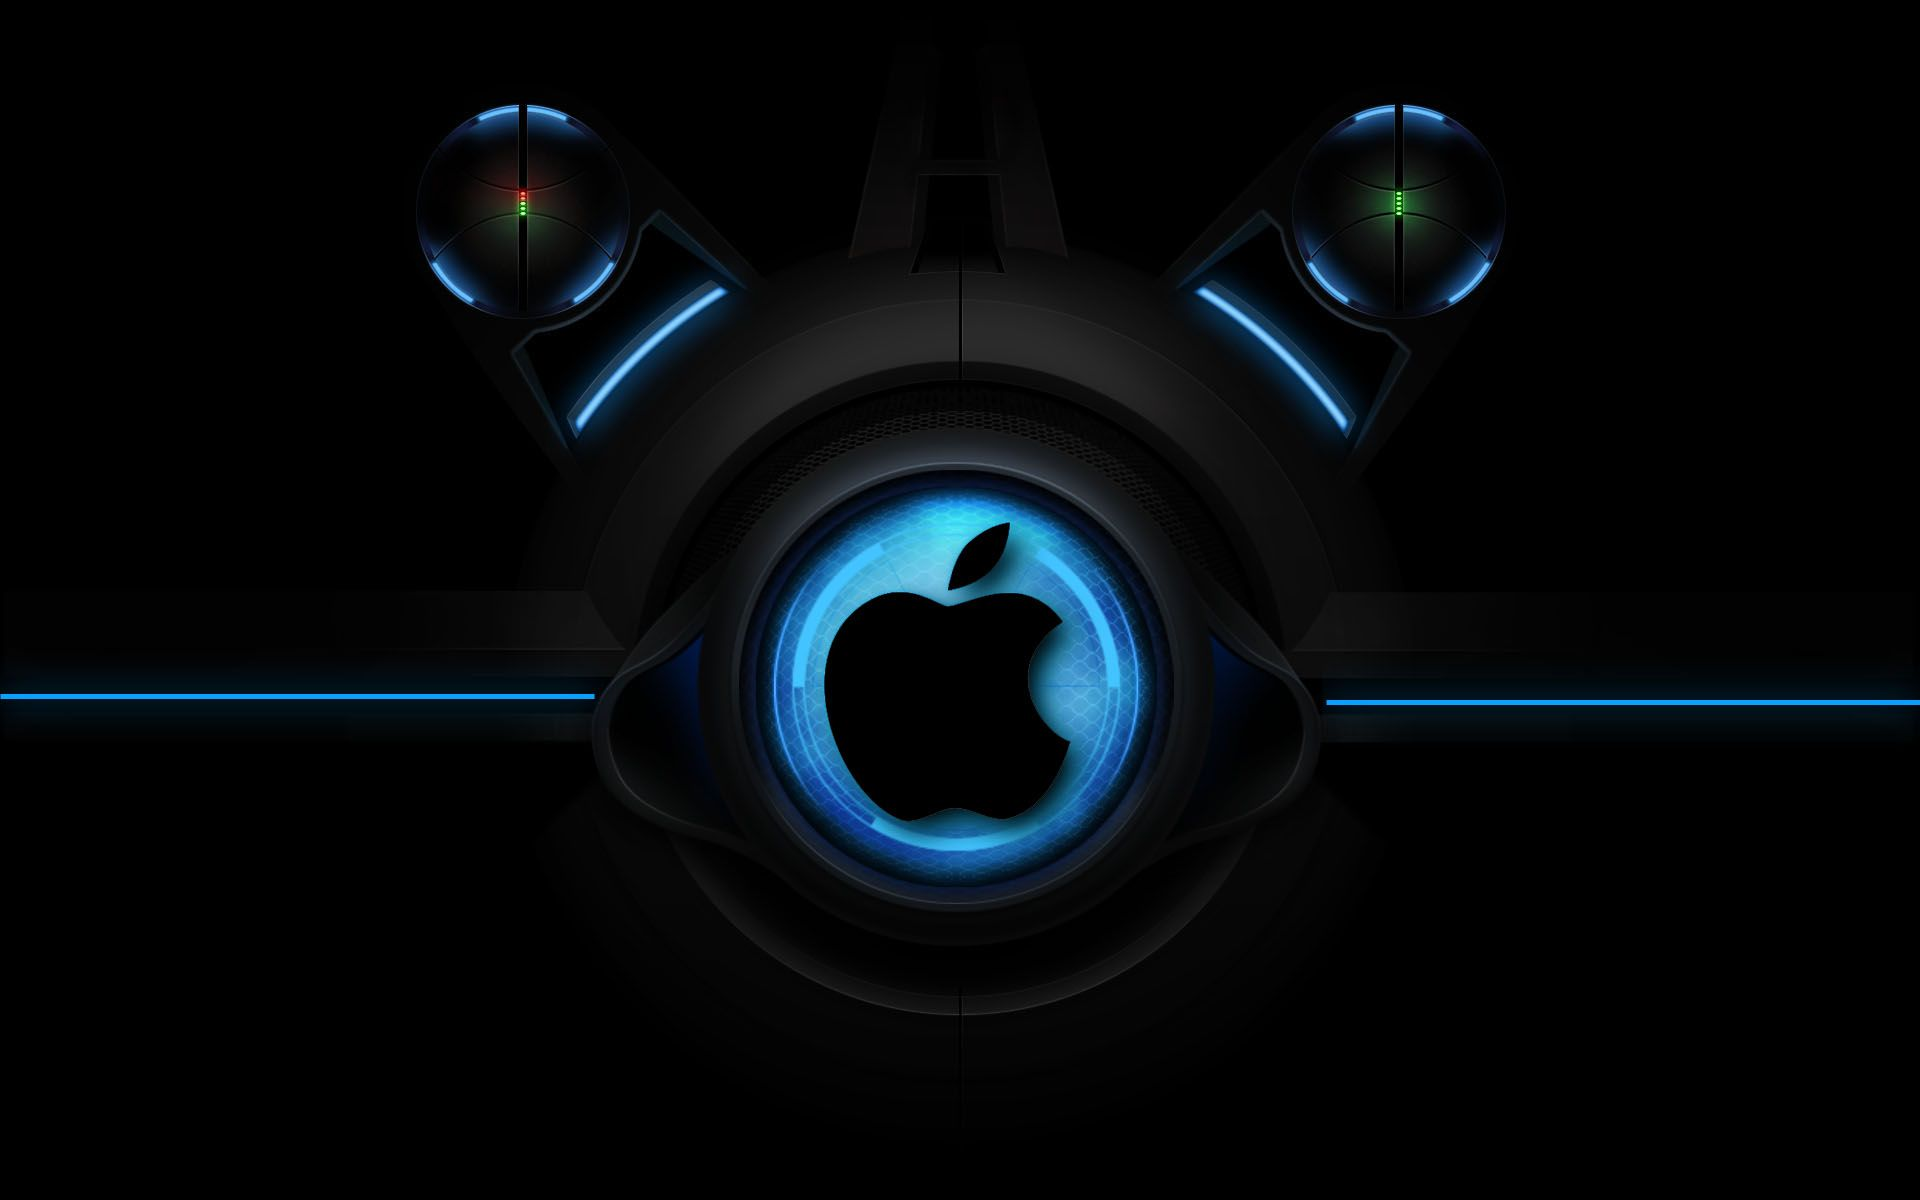 abstract mac apple logo background mac os wallpapers hd, mac os